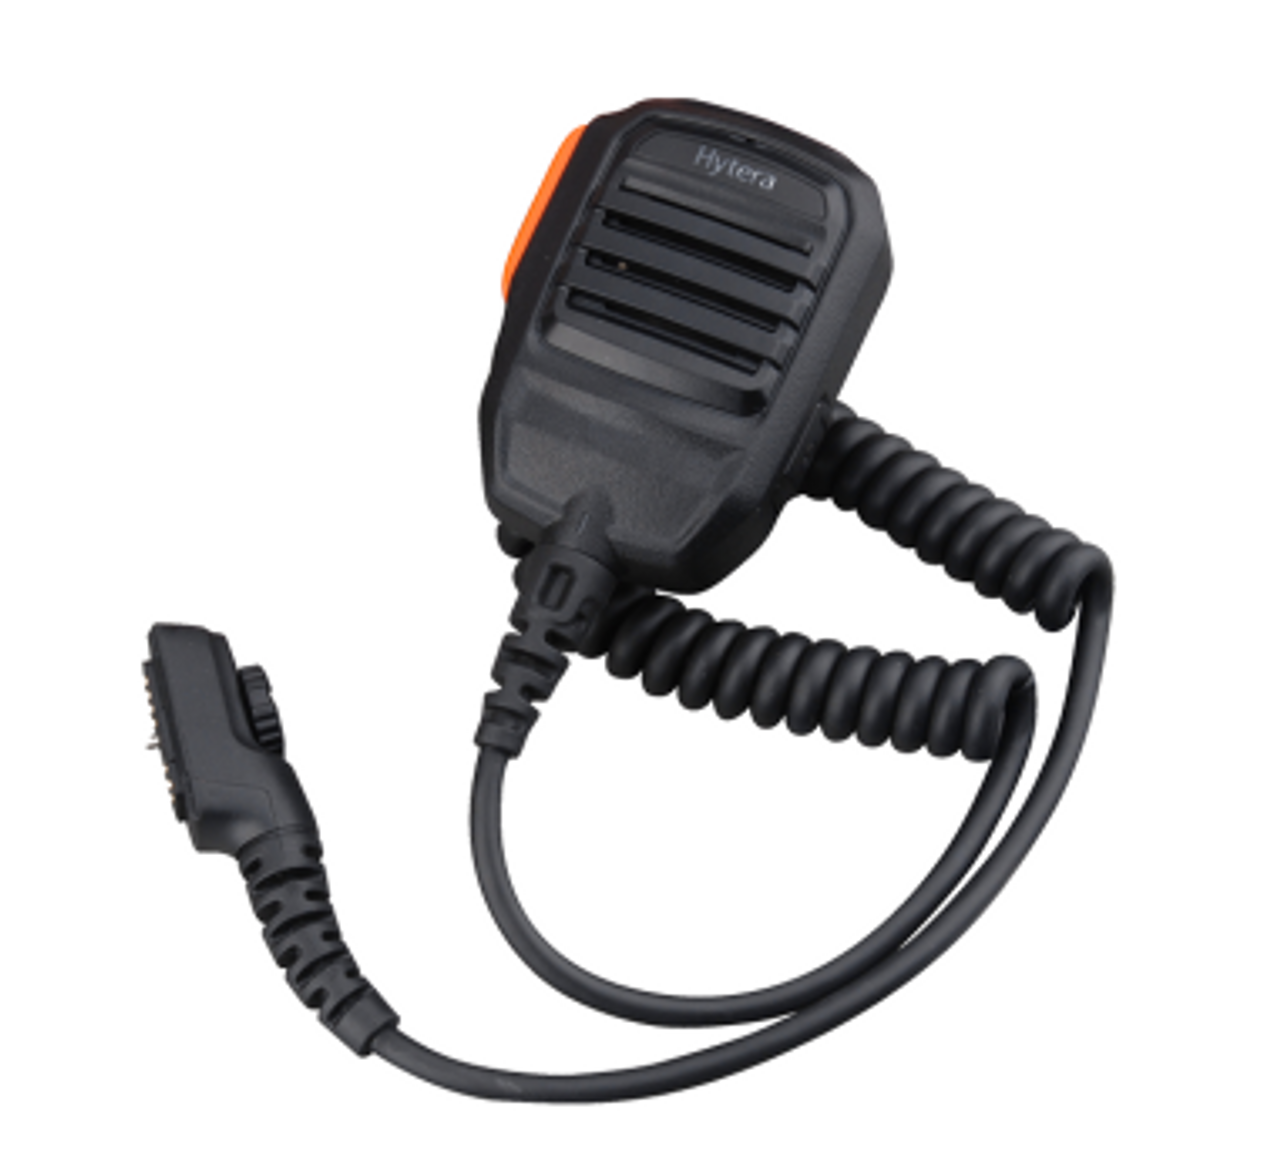 Hytera SM18N2 IP67 Rated Speaker Mic for Hytera PD7i & Hytera PD9i Speaker Mics